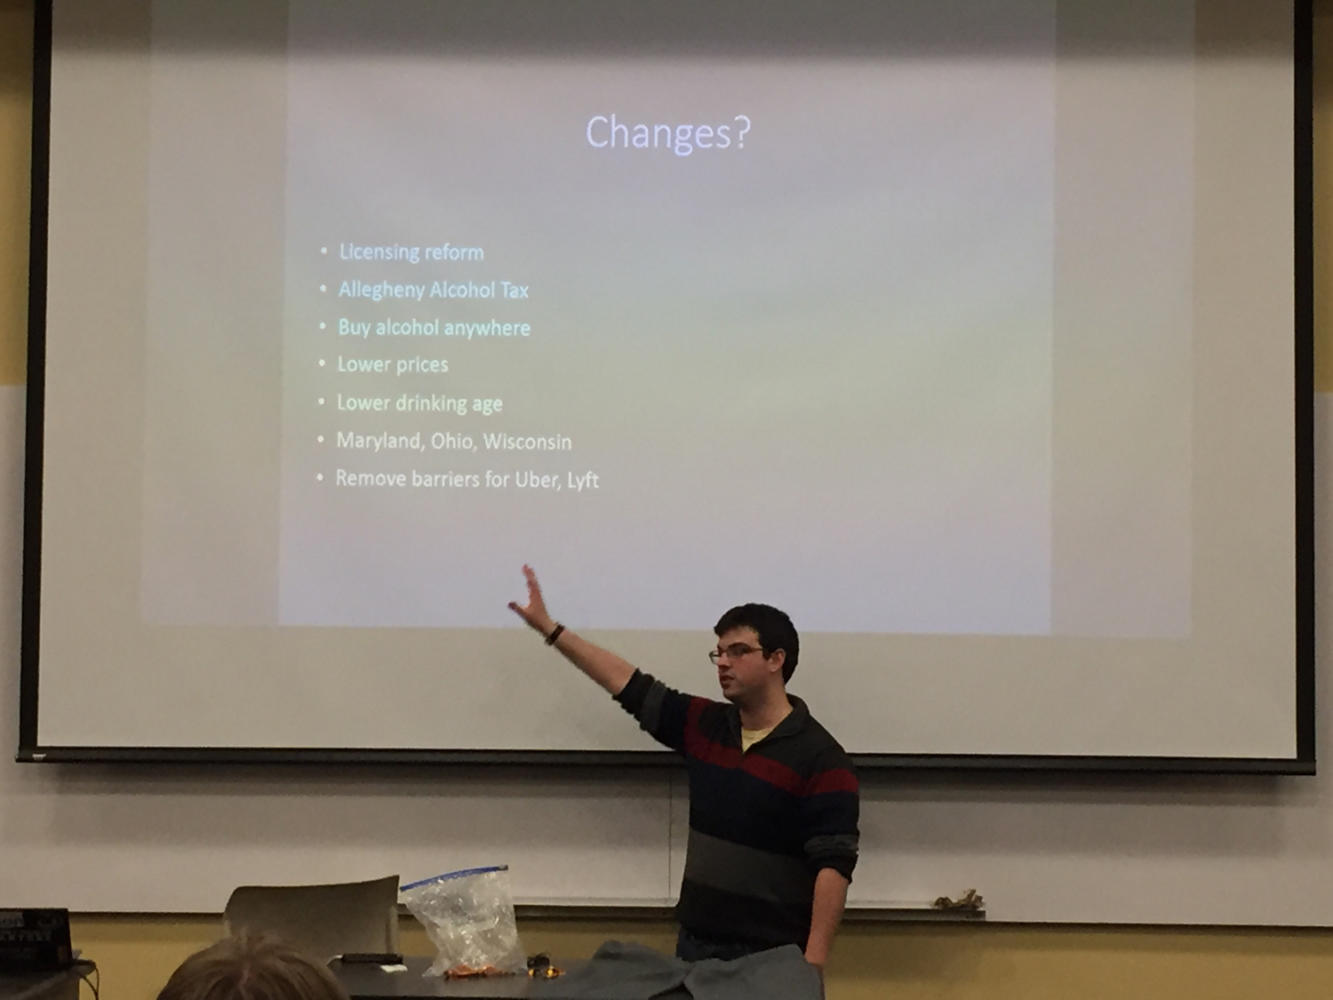 Pitt's Students for Liberty club president Ben Sheppard delivers a presentation featuring potential changes that could be made to Pennsylvania's liquor laws. (Photo by Neena Hagen | Staff Columnist)